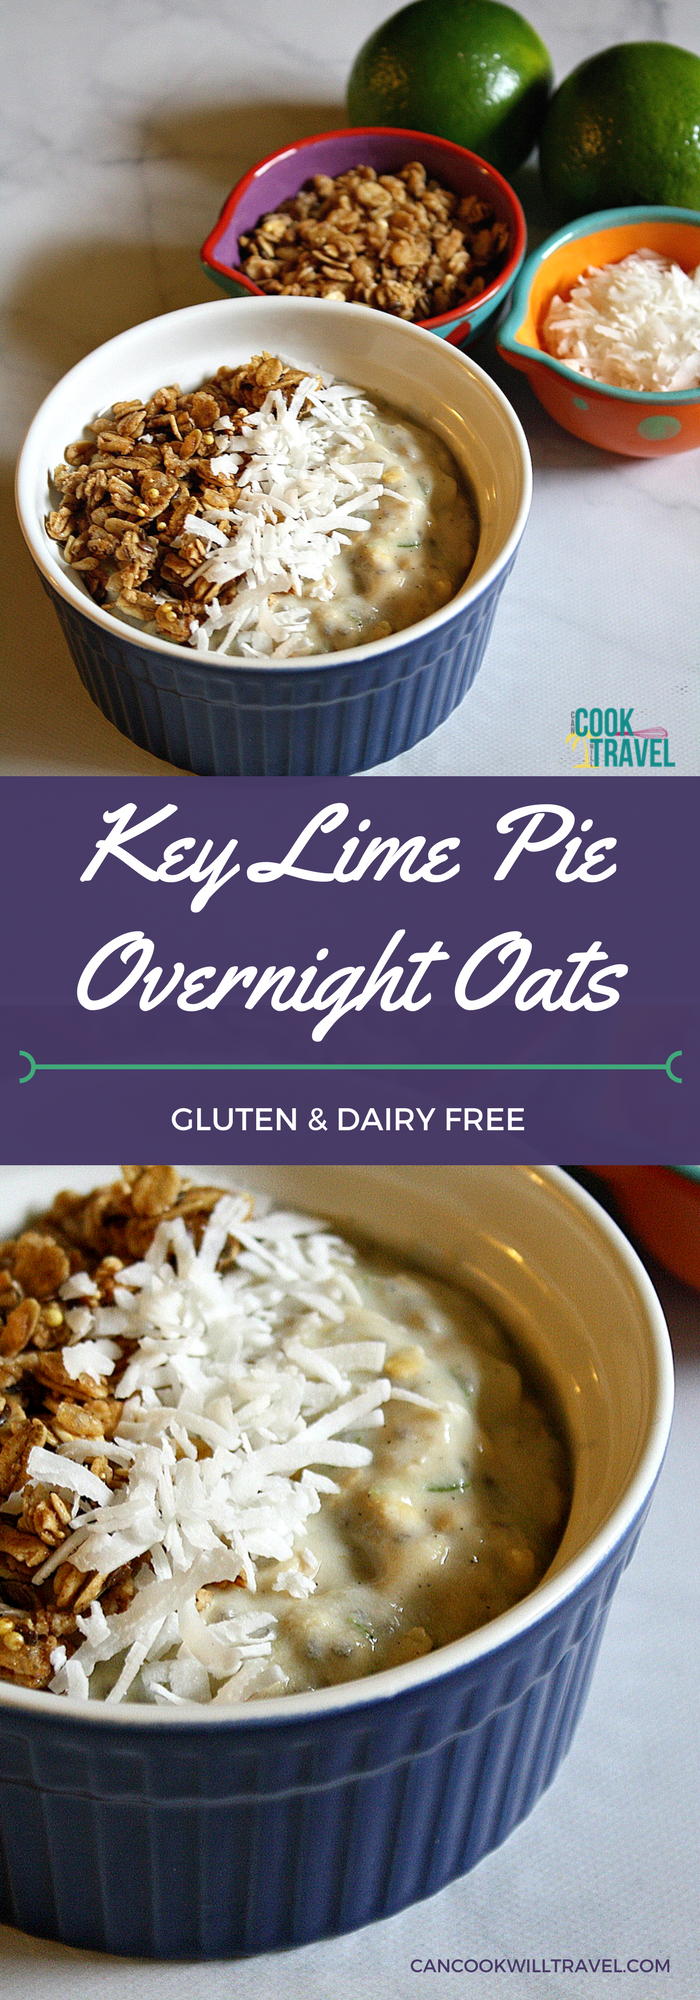 Key Lime Pie Overnight Oats_Collage1